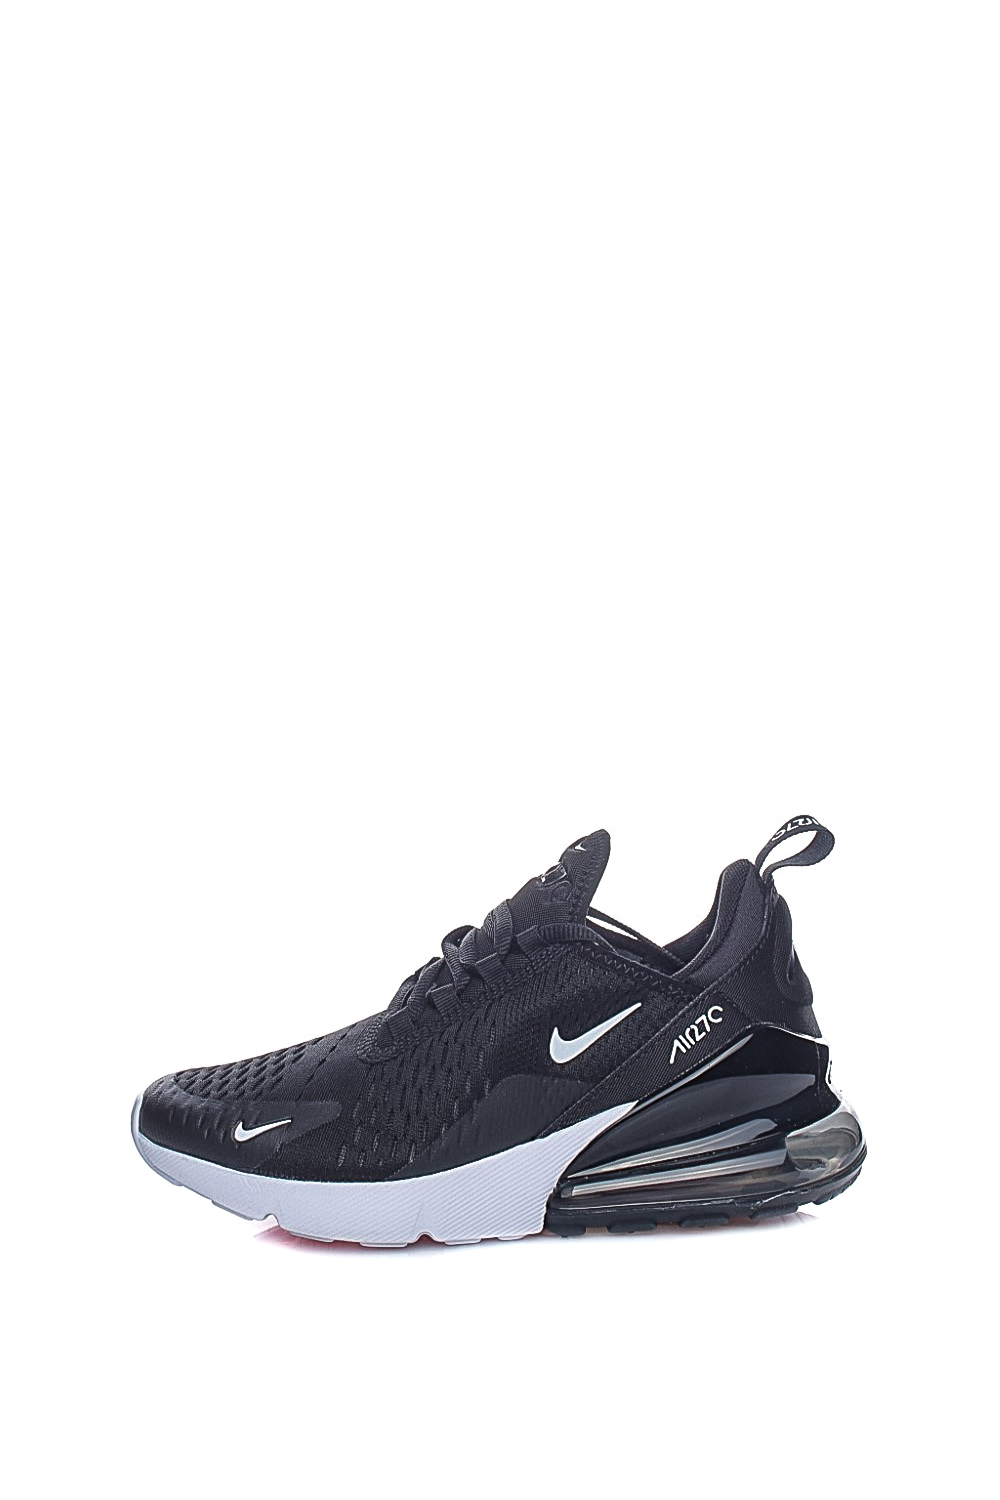 NIKE – Παιδικά παπούτσια running NIKE AIR MAX 270 (GS) μαύρα